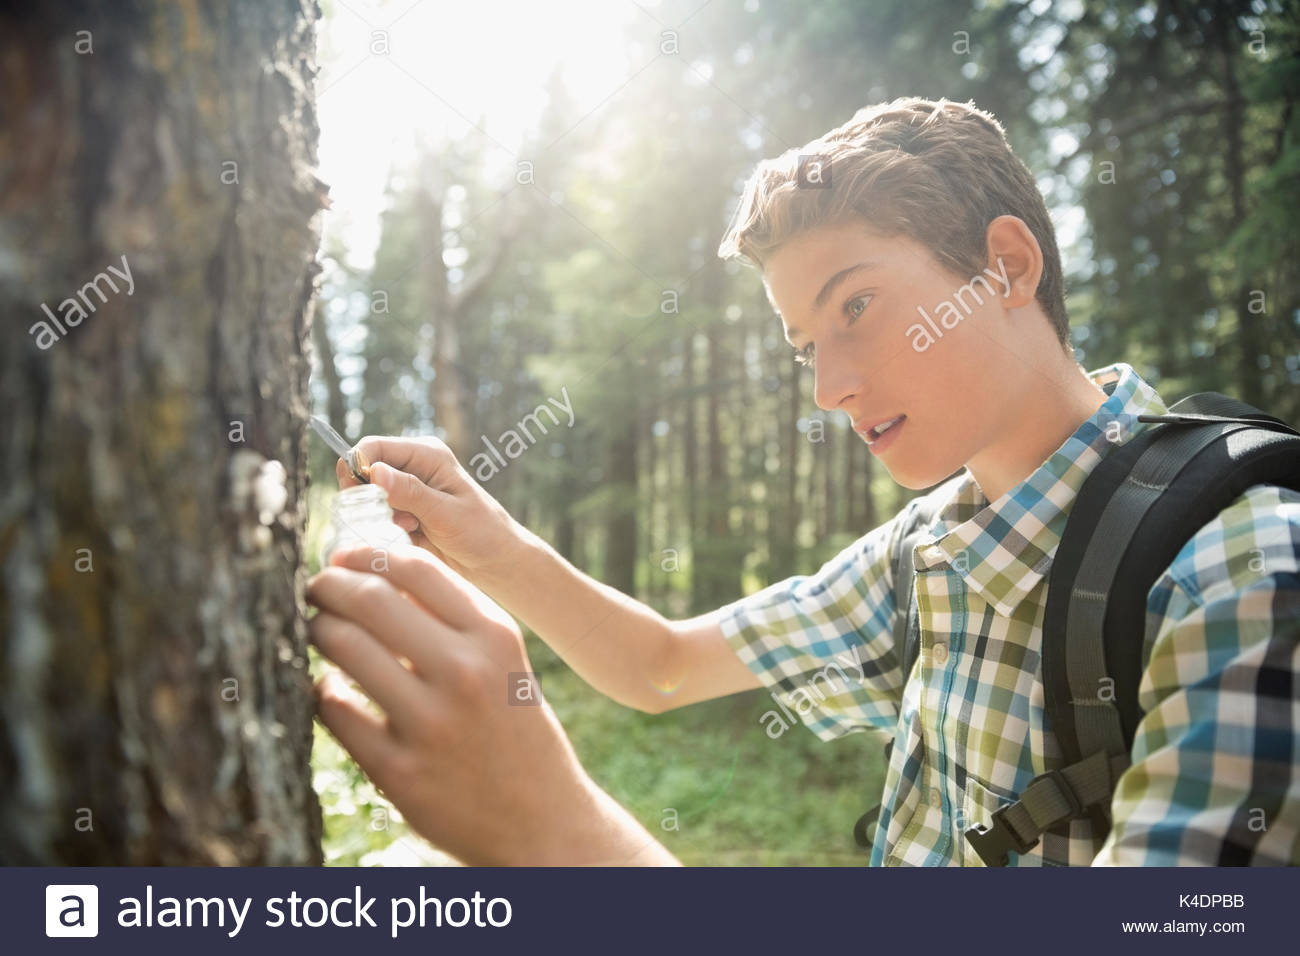 Teenage boy outdoor school student collecting bark specimen in jar, hiking in sunny woods - Stock Image